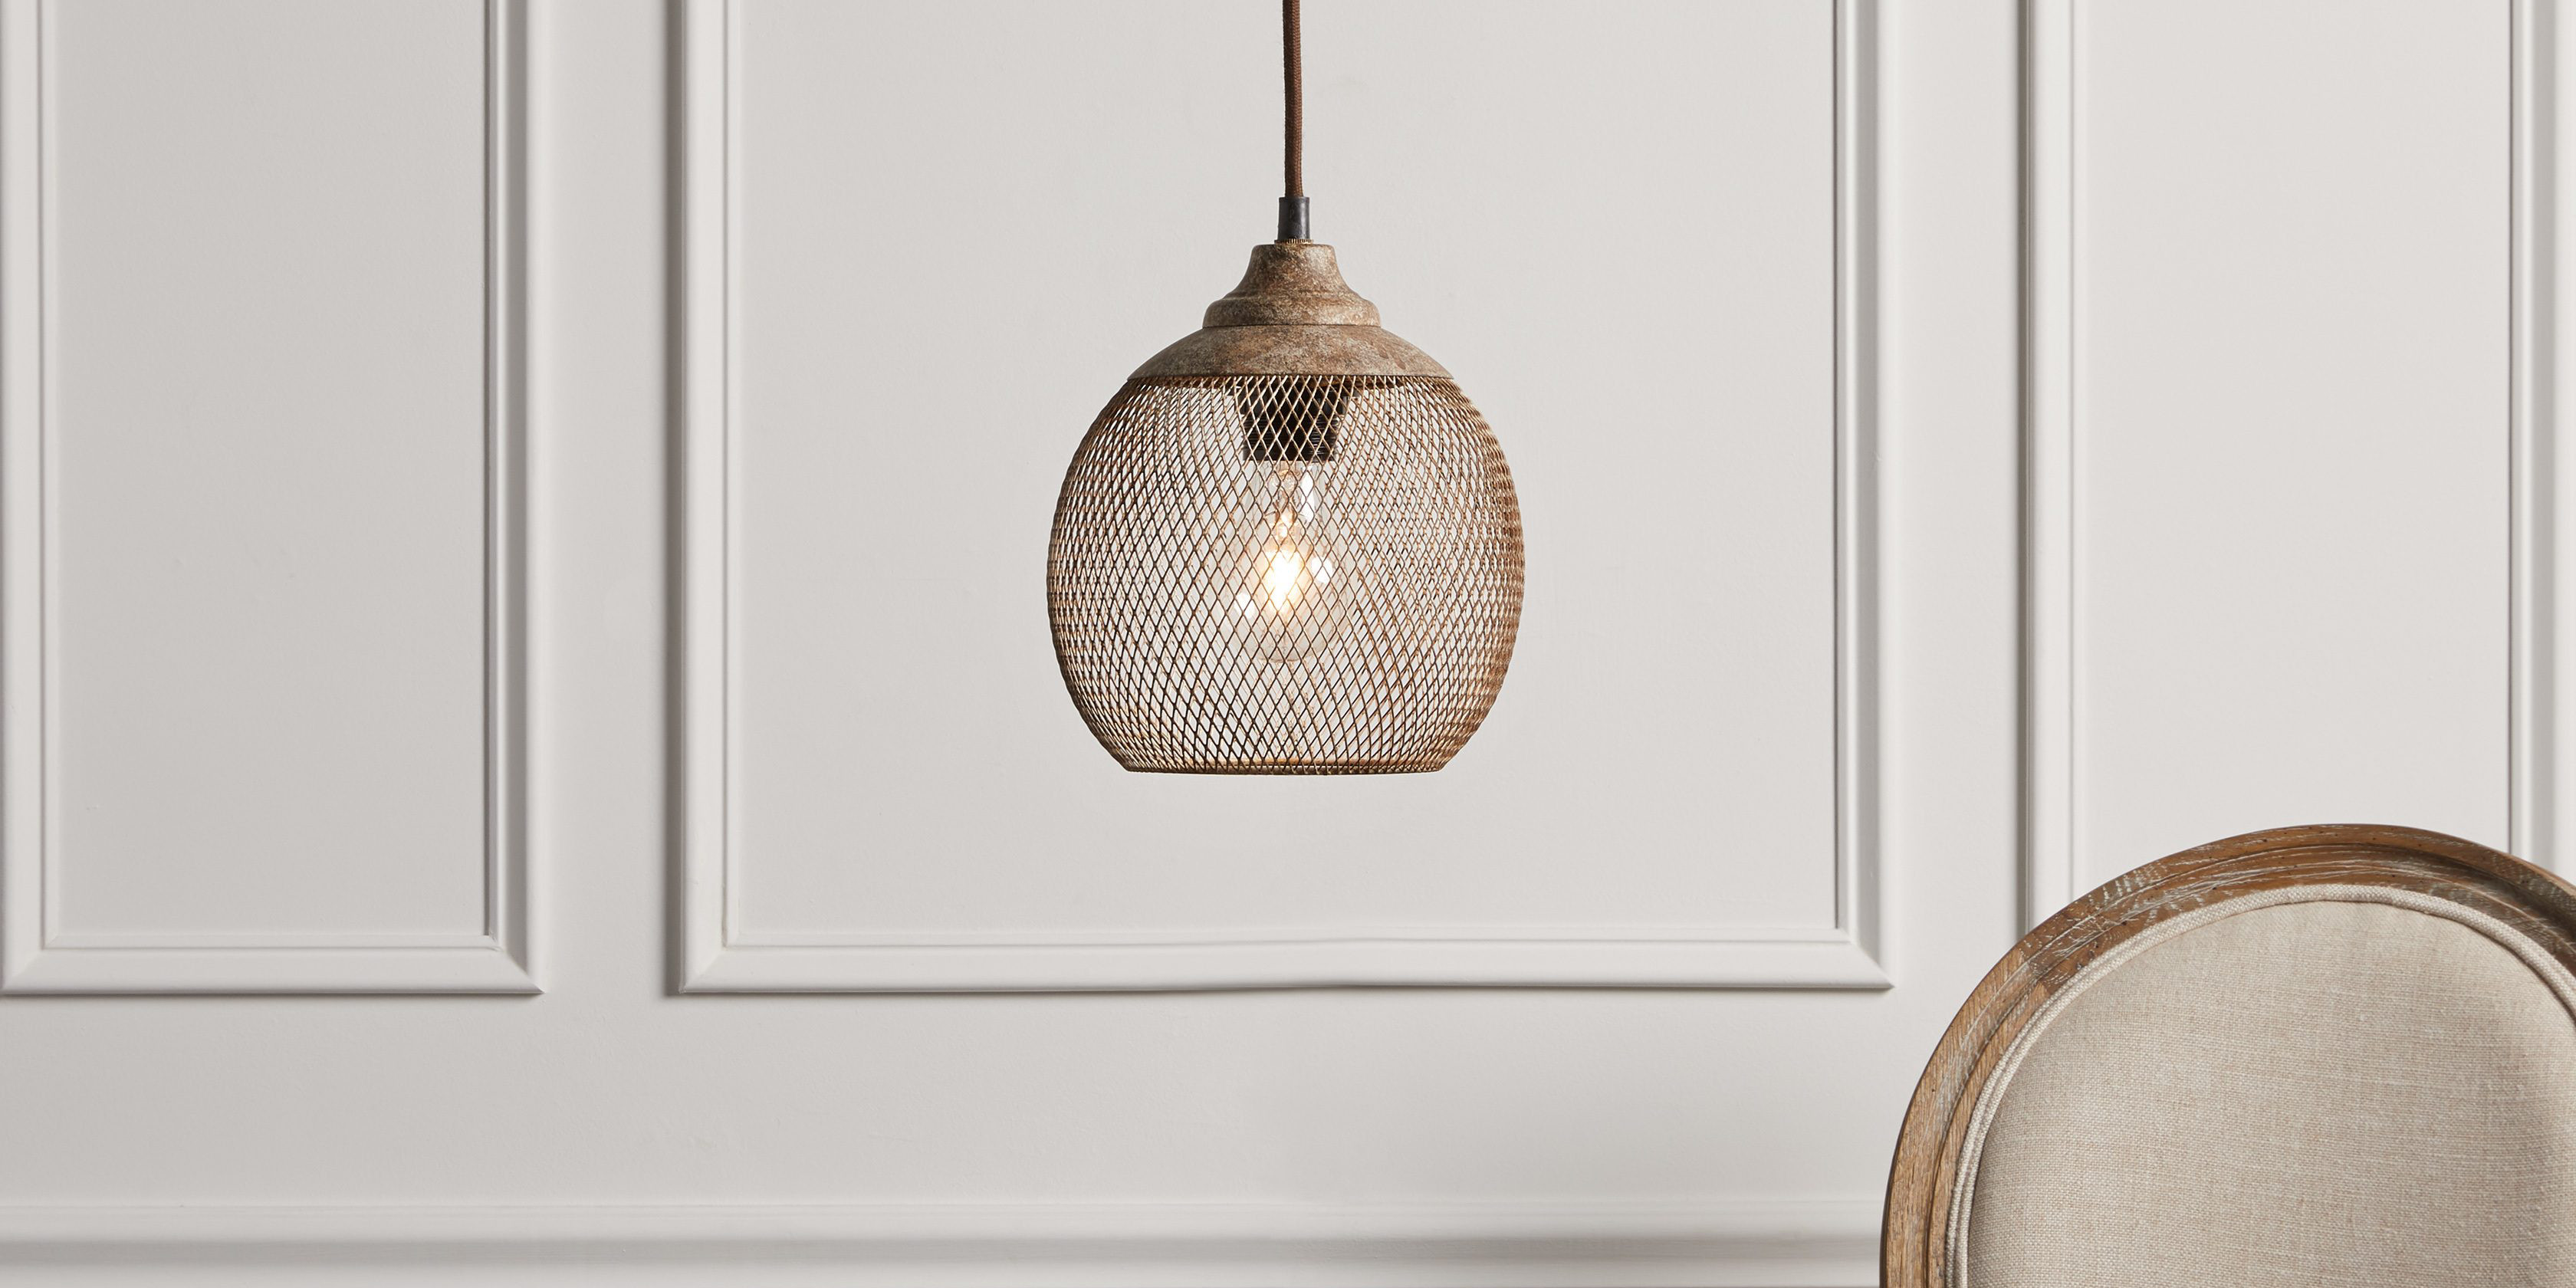 arhaus wall vase of lanister mesh pendant arhaus furniture intended for product largestandard 652036l044 2